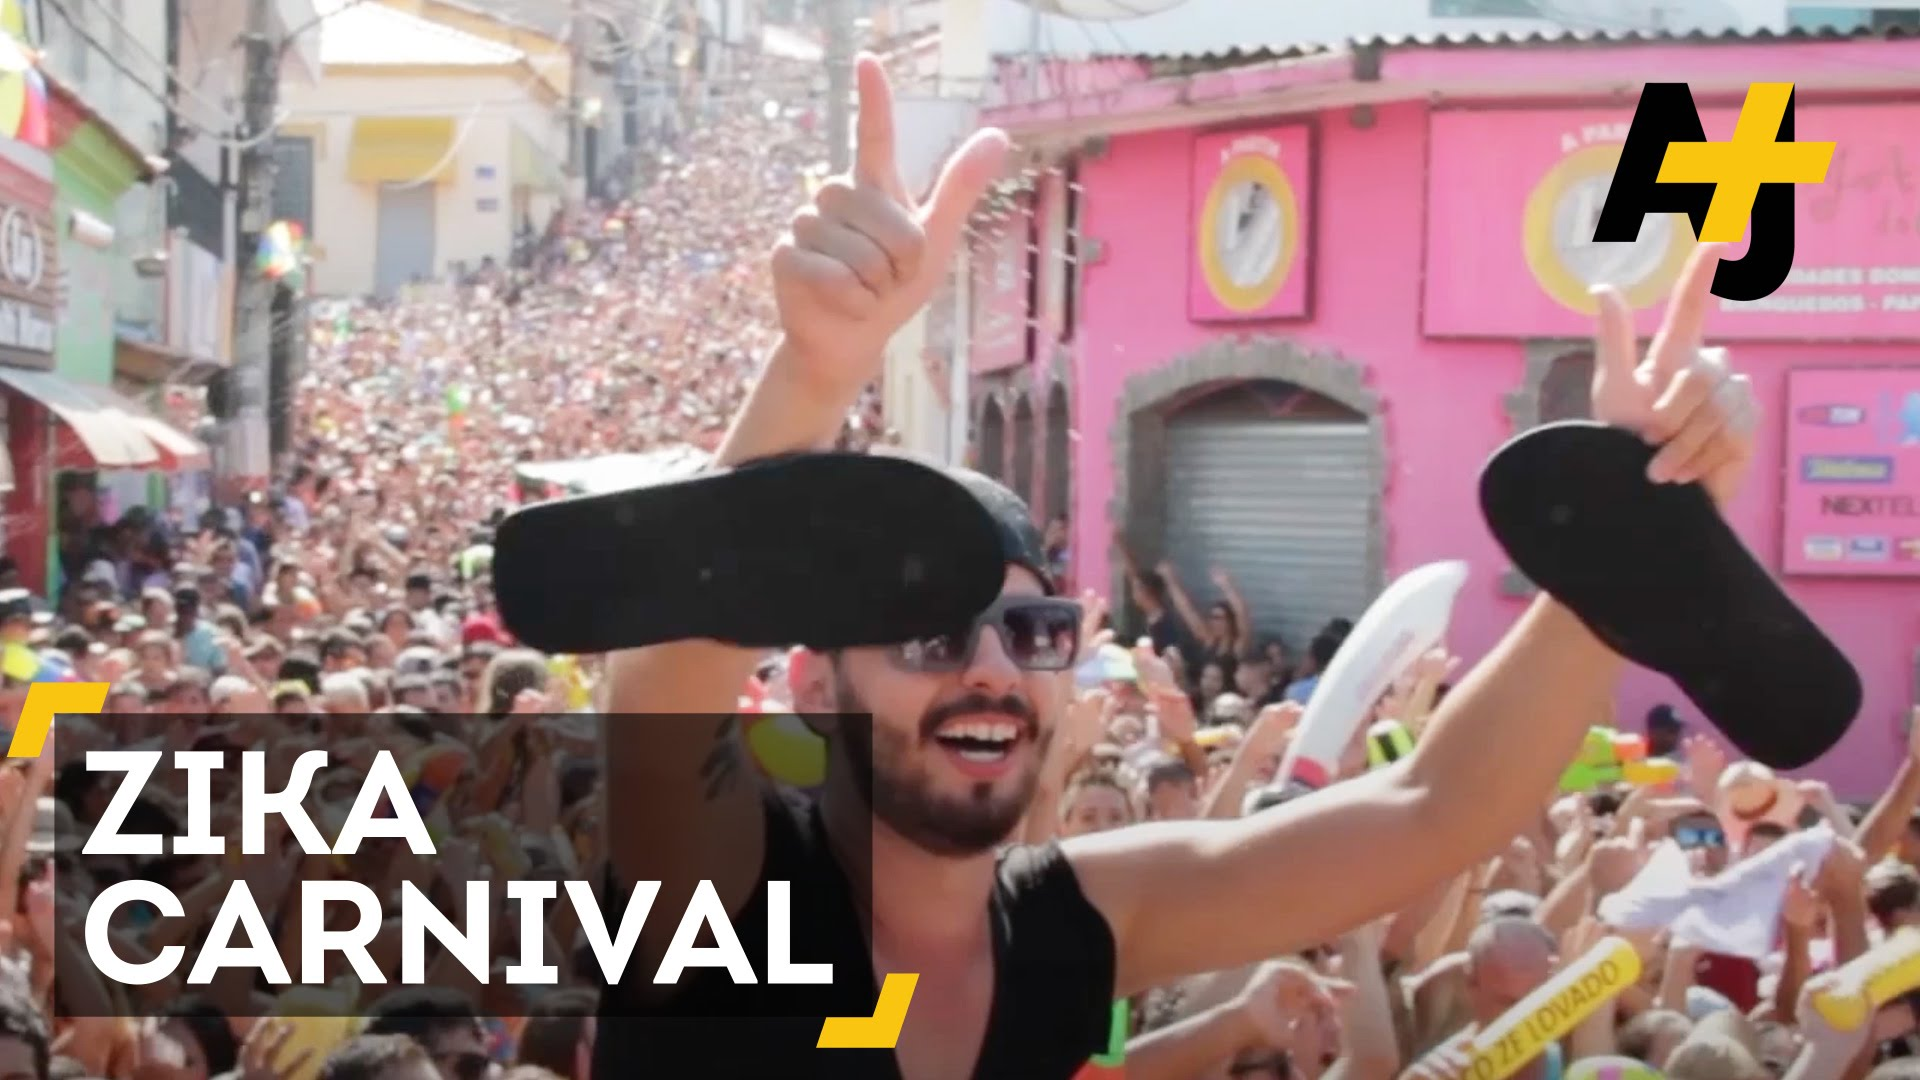 Anti-Zika Anthem For Brazil's Carnival